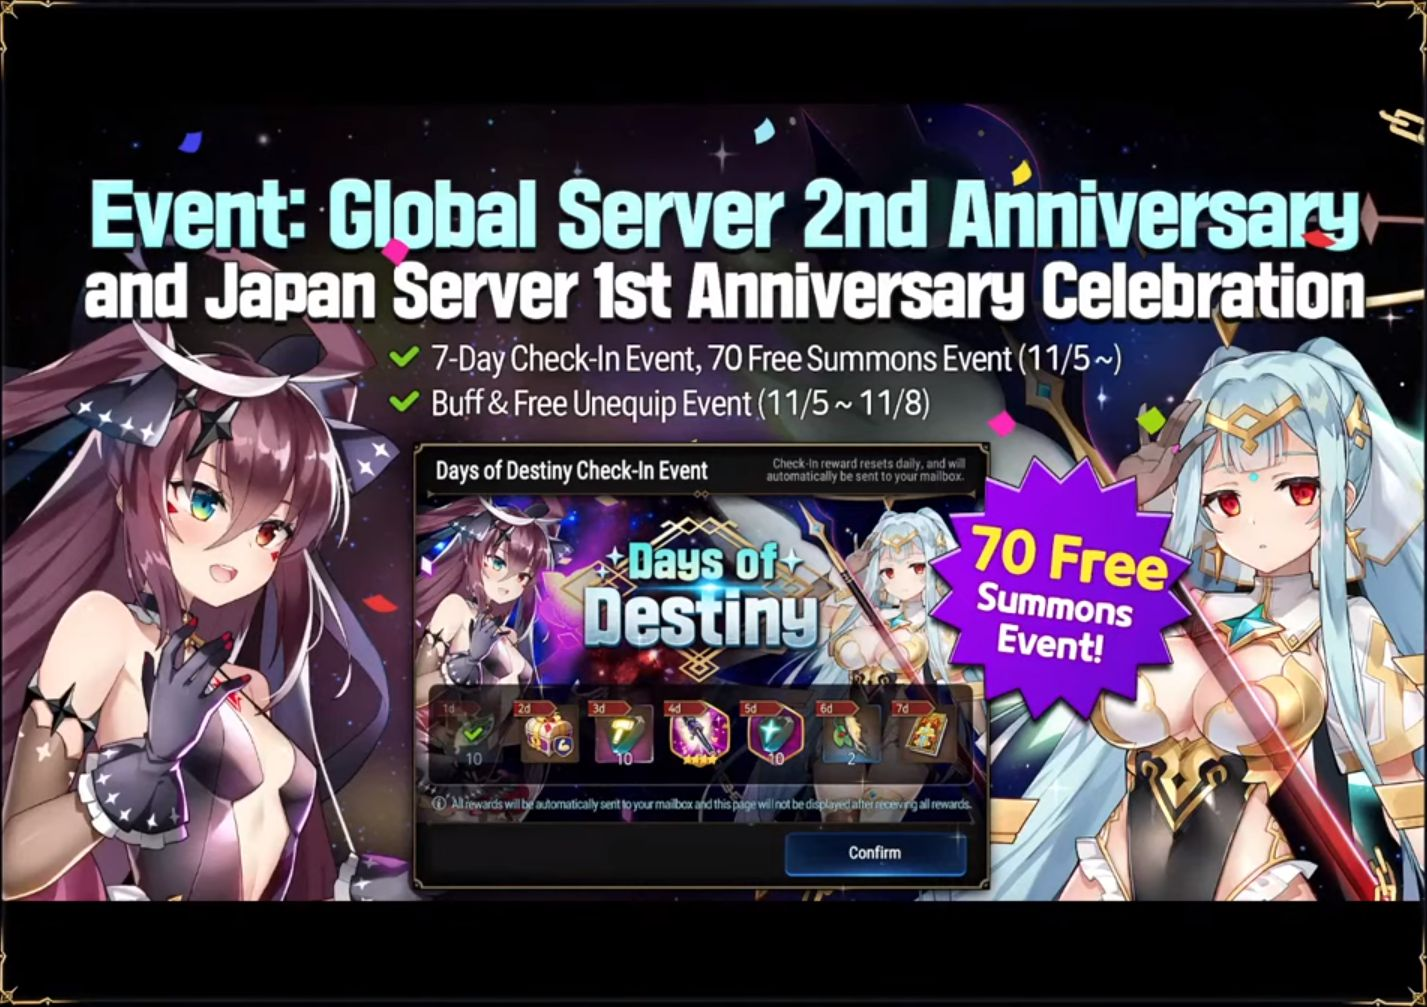 Epic Seven Global Server 2nd Anniversary – 70x Summons, Free Buffs, and Other Goodies in This Upcoming Event